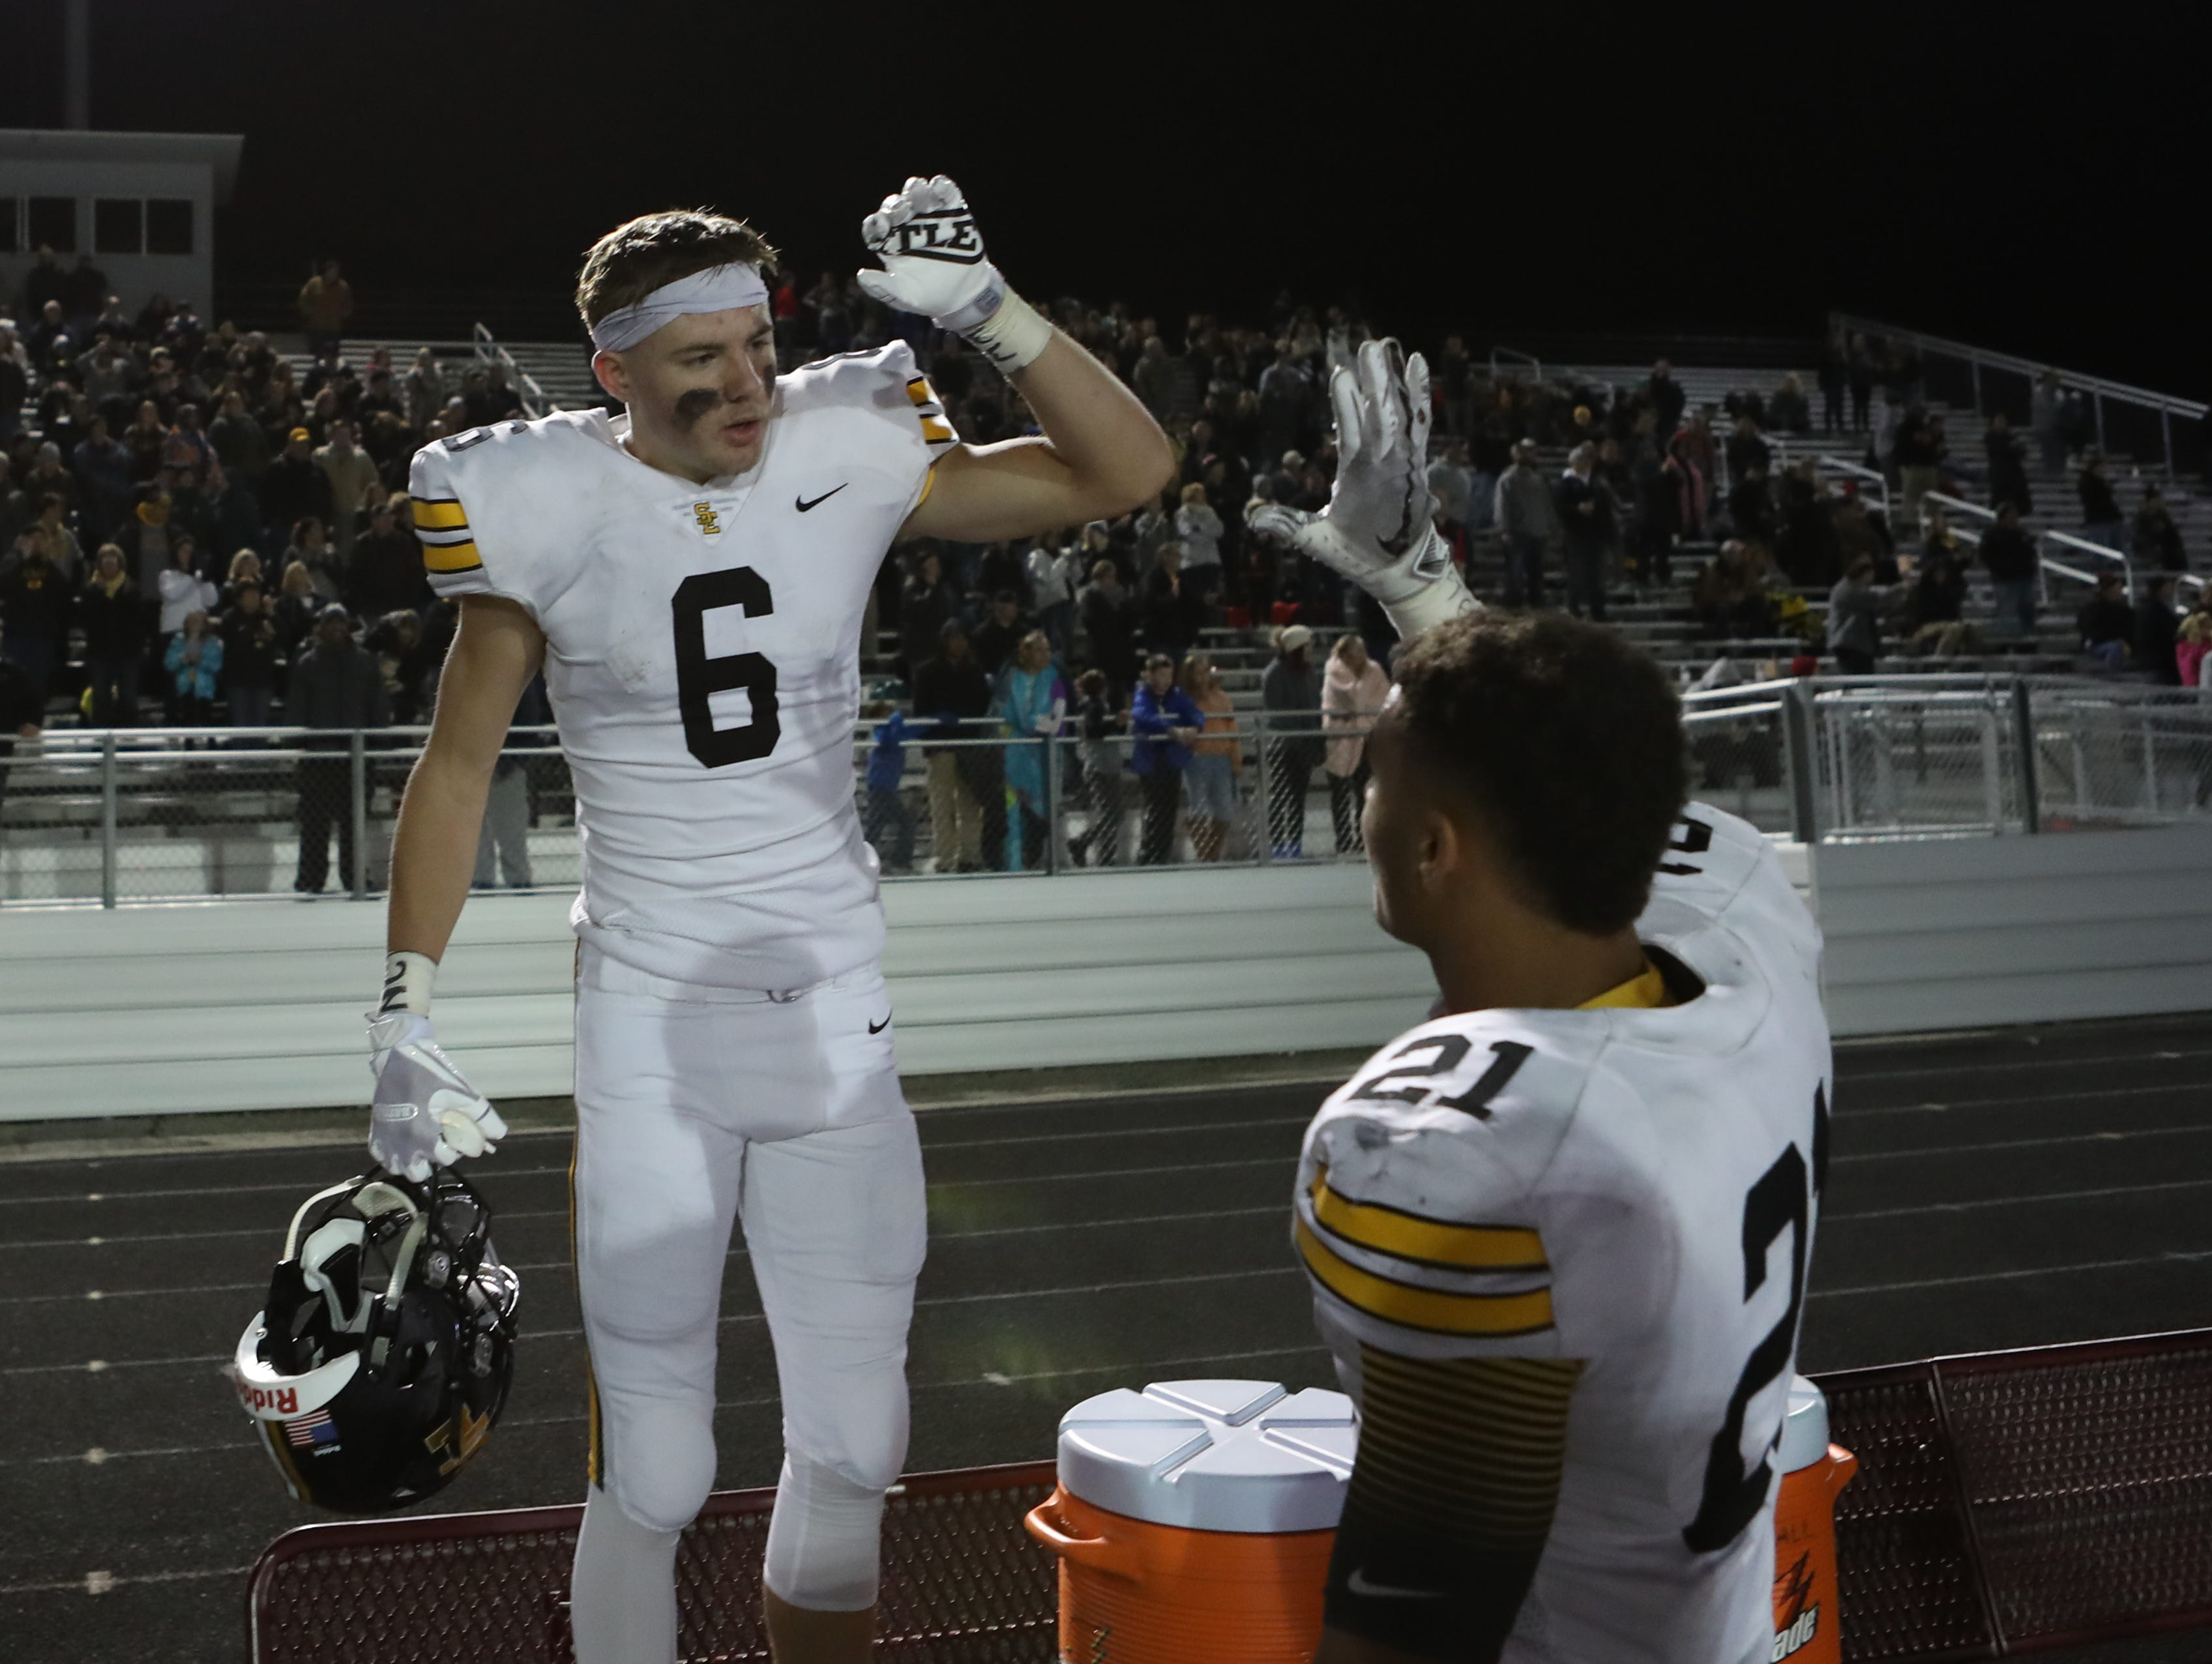 Southeast Polk Rams Dylan Travis (6) and Southeast Polk Rams Gavin Williams (21) celebrate during the final seconds of their win over the Ankeny Centennial Jaguars at Ankeny football stadium.